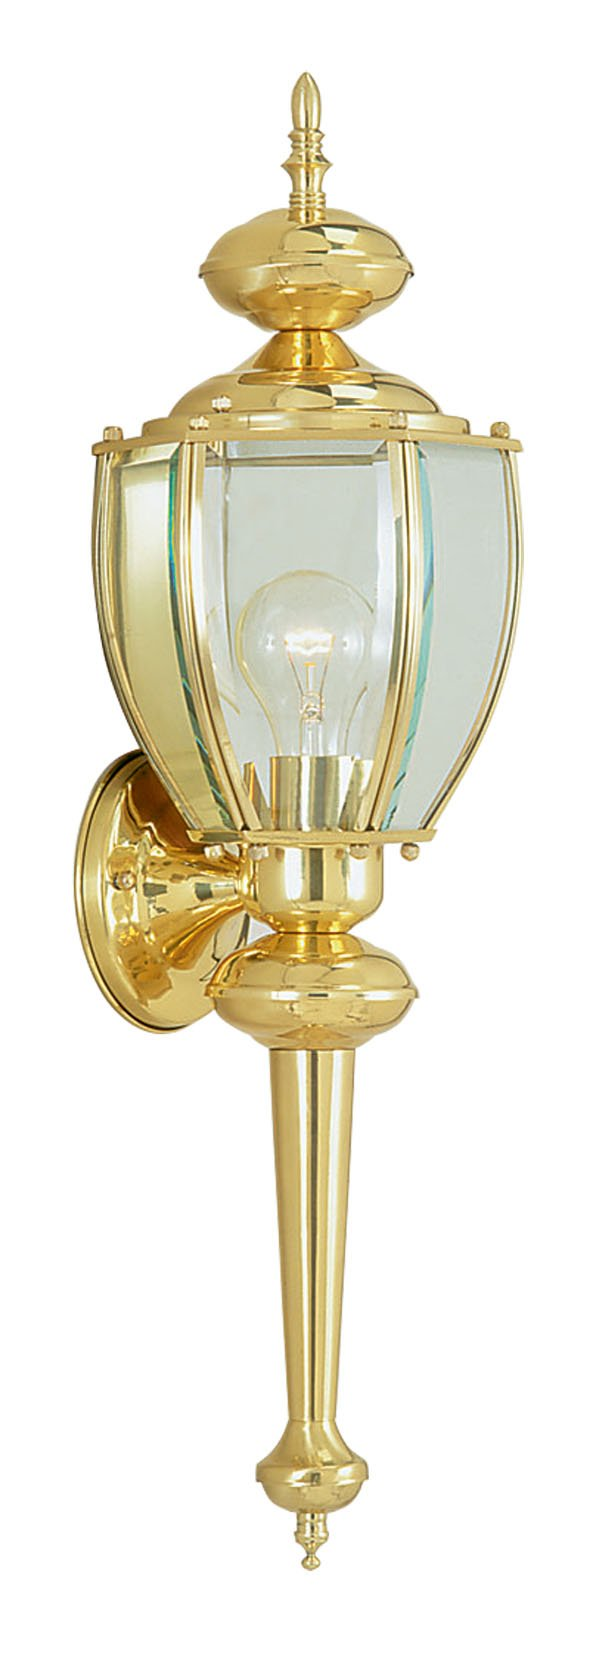 Livex Lighting 2112-02 Outdoor Wall Lantern with Clear Beveled Glass Shades, Polished Brass - TRADITIONAL DESIGN. Drawing inspiration from traditional furnishing and décor, our wide range of traditional style lights incorporate timeless designs that add a touch of elegance and blend in perfectly in your home. SOLID BRASS. High quality solid brass material which is not only aesthetically appealing thus adding to the elegance but also durable giving you value for your money. OUTDOOR. Built to withstand mechanical damage and exposure to harsh climatic conditions, these lights are not only durable but also elegantly designed to beautifully light up your compound. Add these outdoor lights to your backyard, front area, or to light up your pond in an exquisite way. - patio, outdoor-lights, outdoor-decor - 61HUUOPs yL -